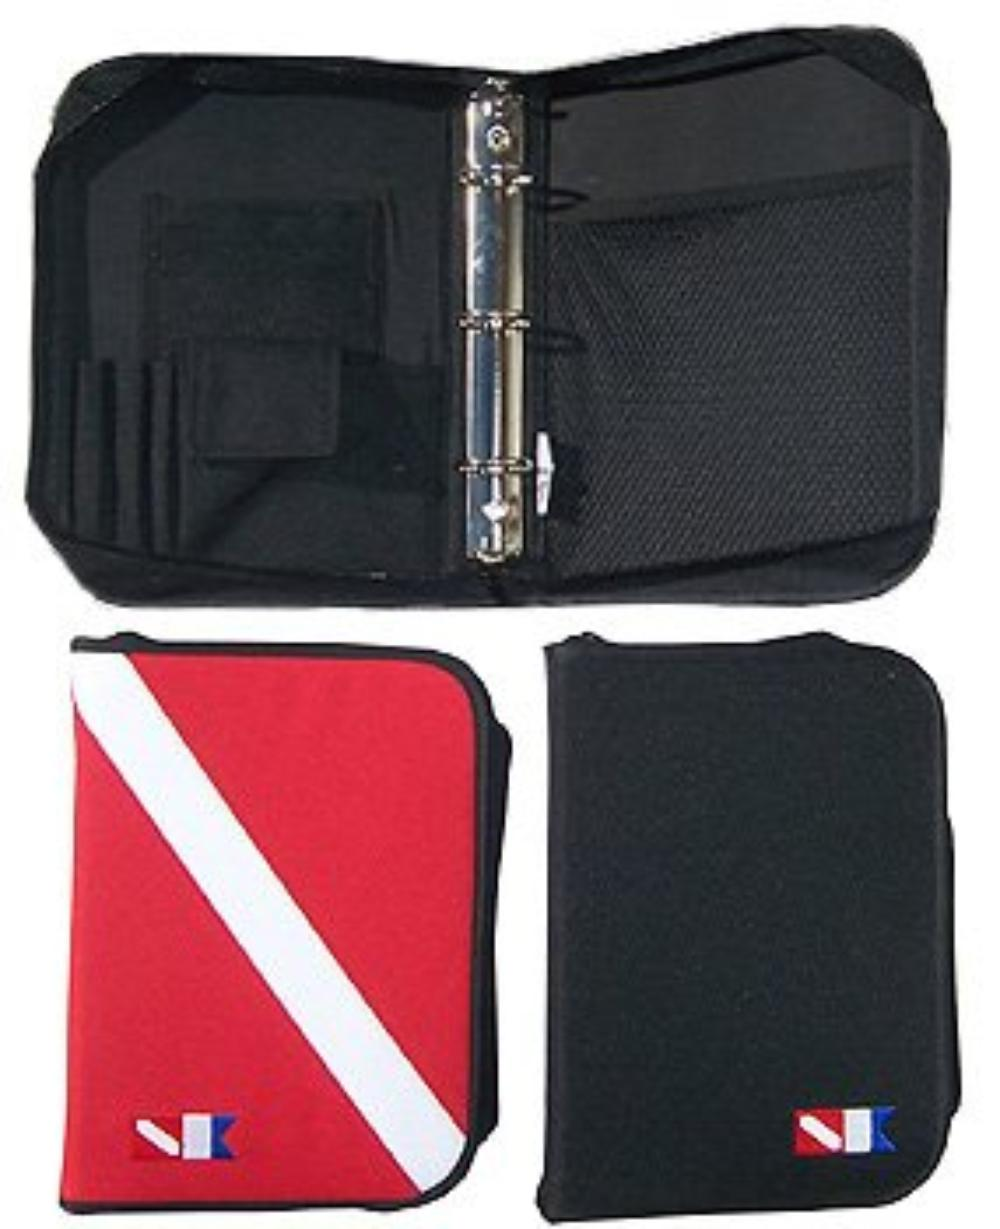 Dive Log Book 3 Ring Binder With Inserts. Dive Flag